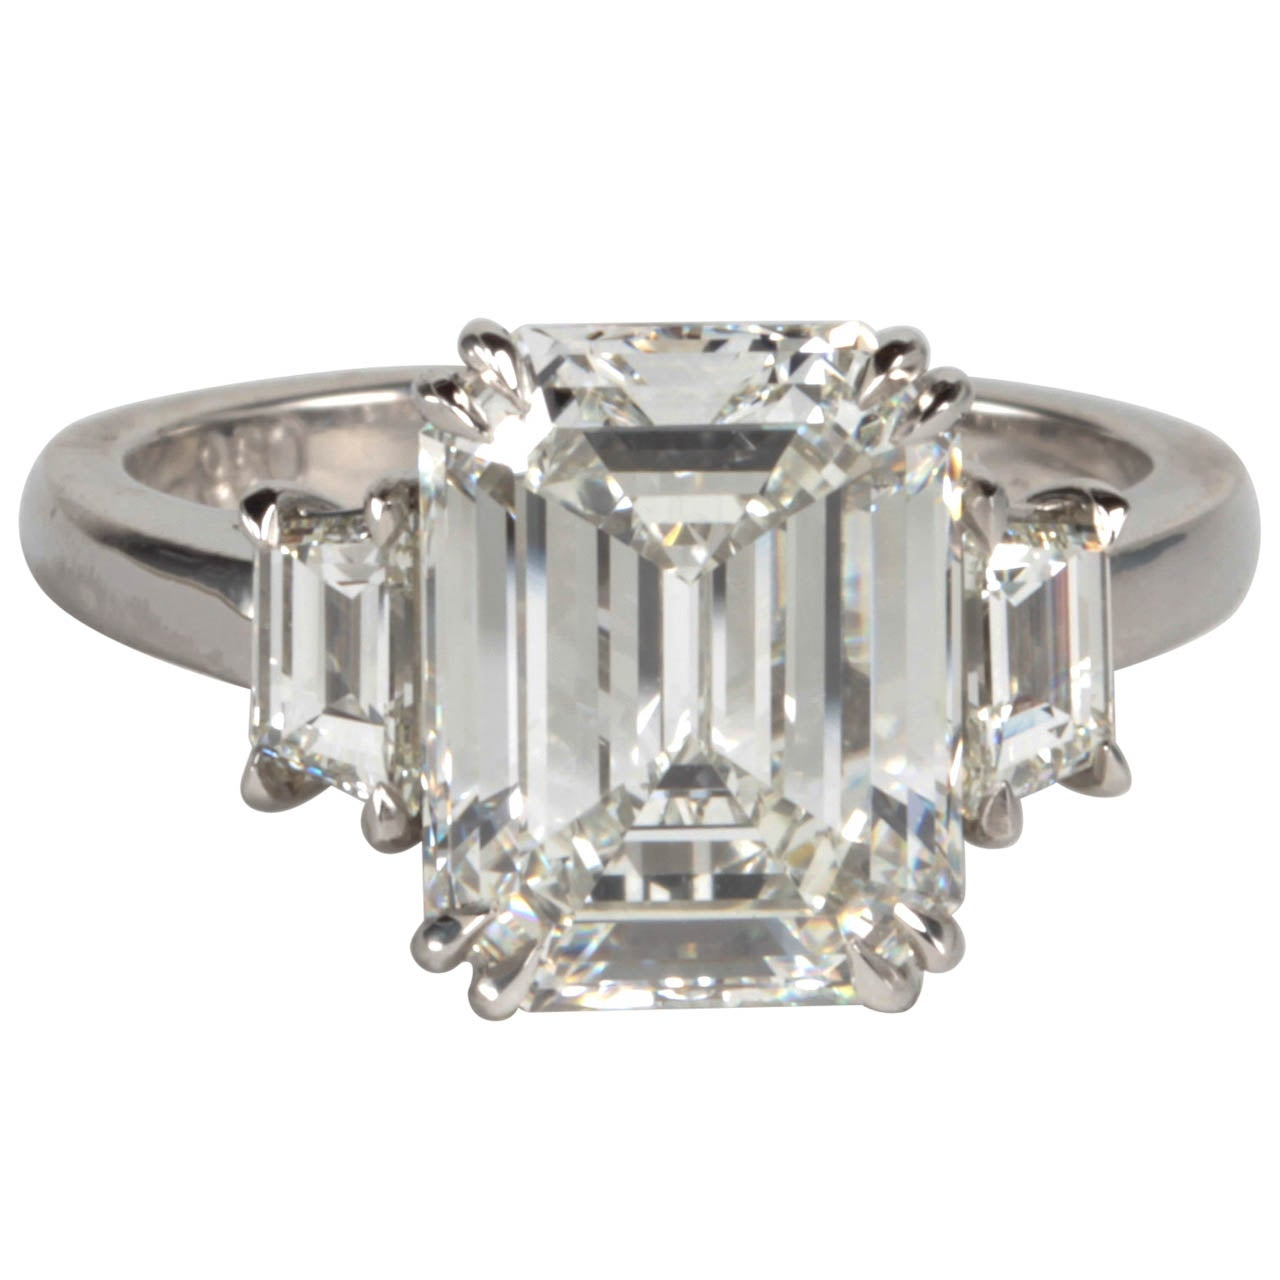 ring rings product engagement certified model gia radiant eng diamond with cut solitaire